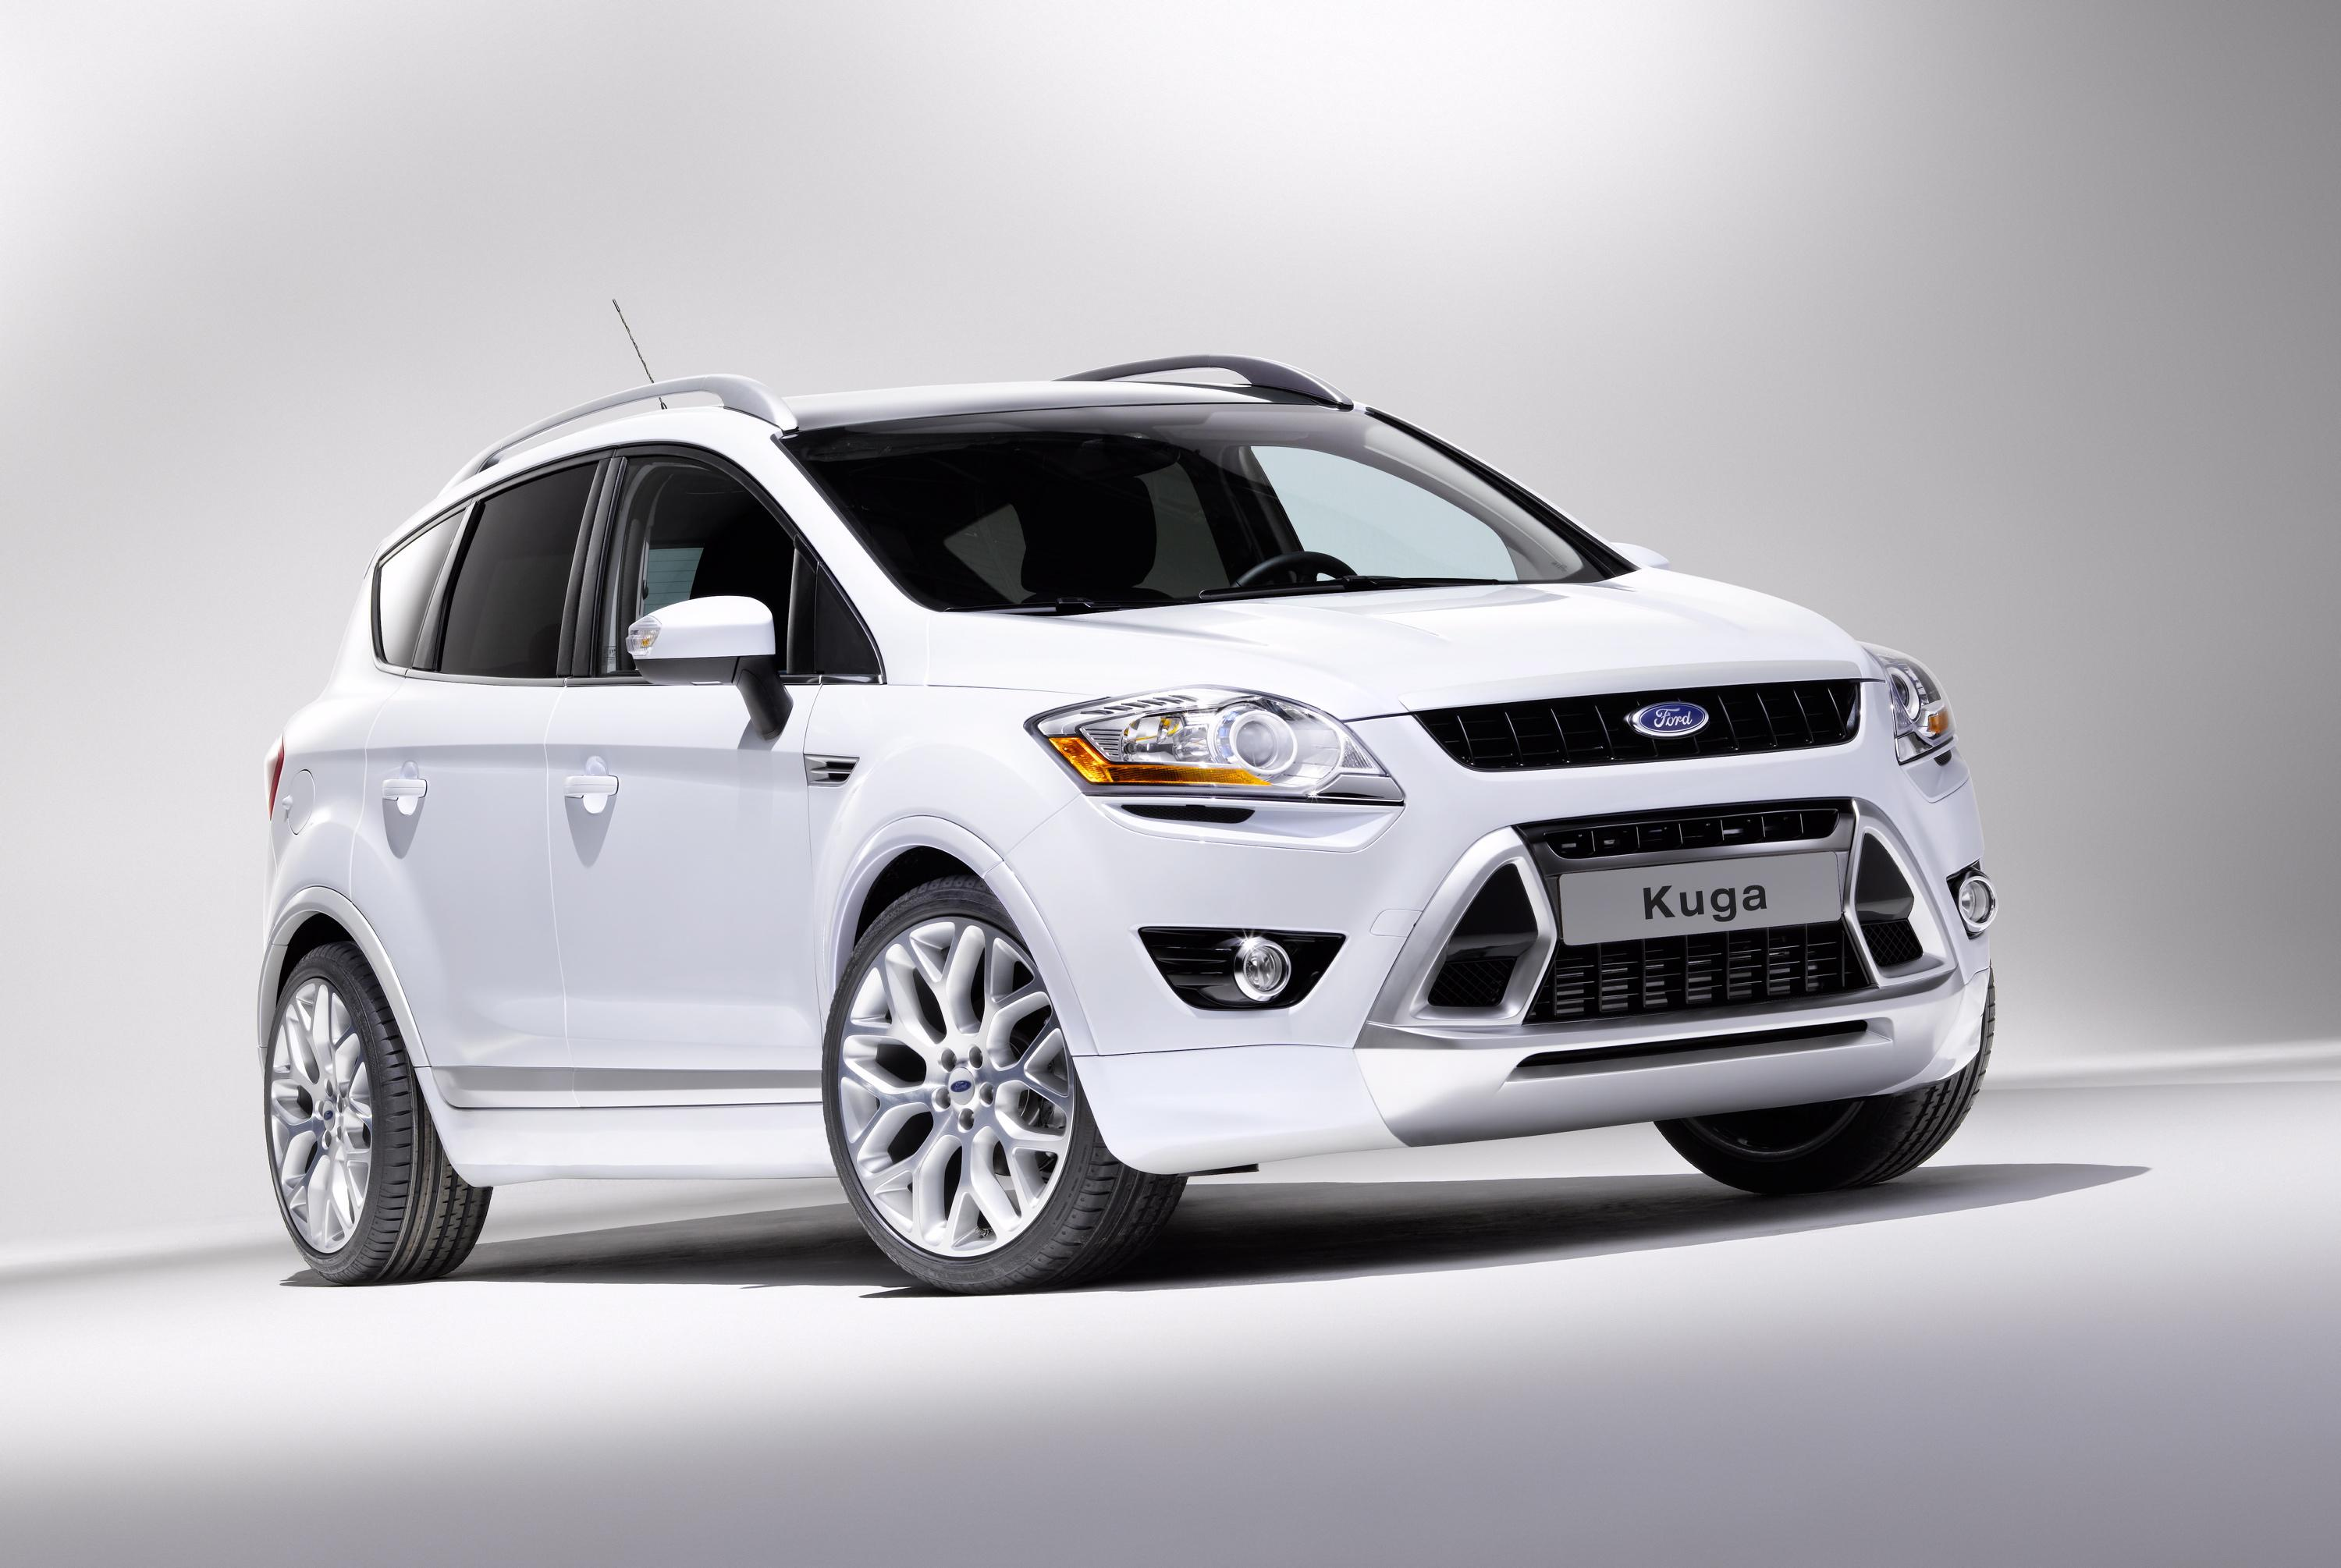 edition sa carbuzz kuga european info western with ford fiat evade